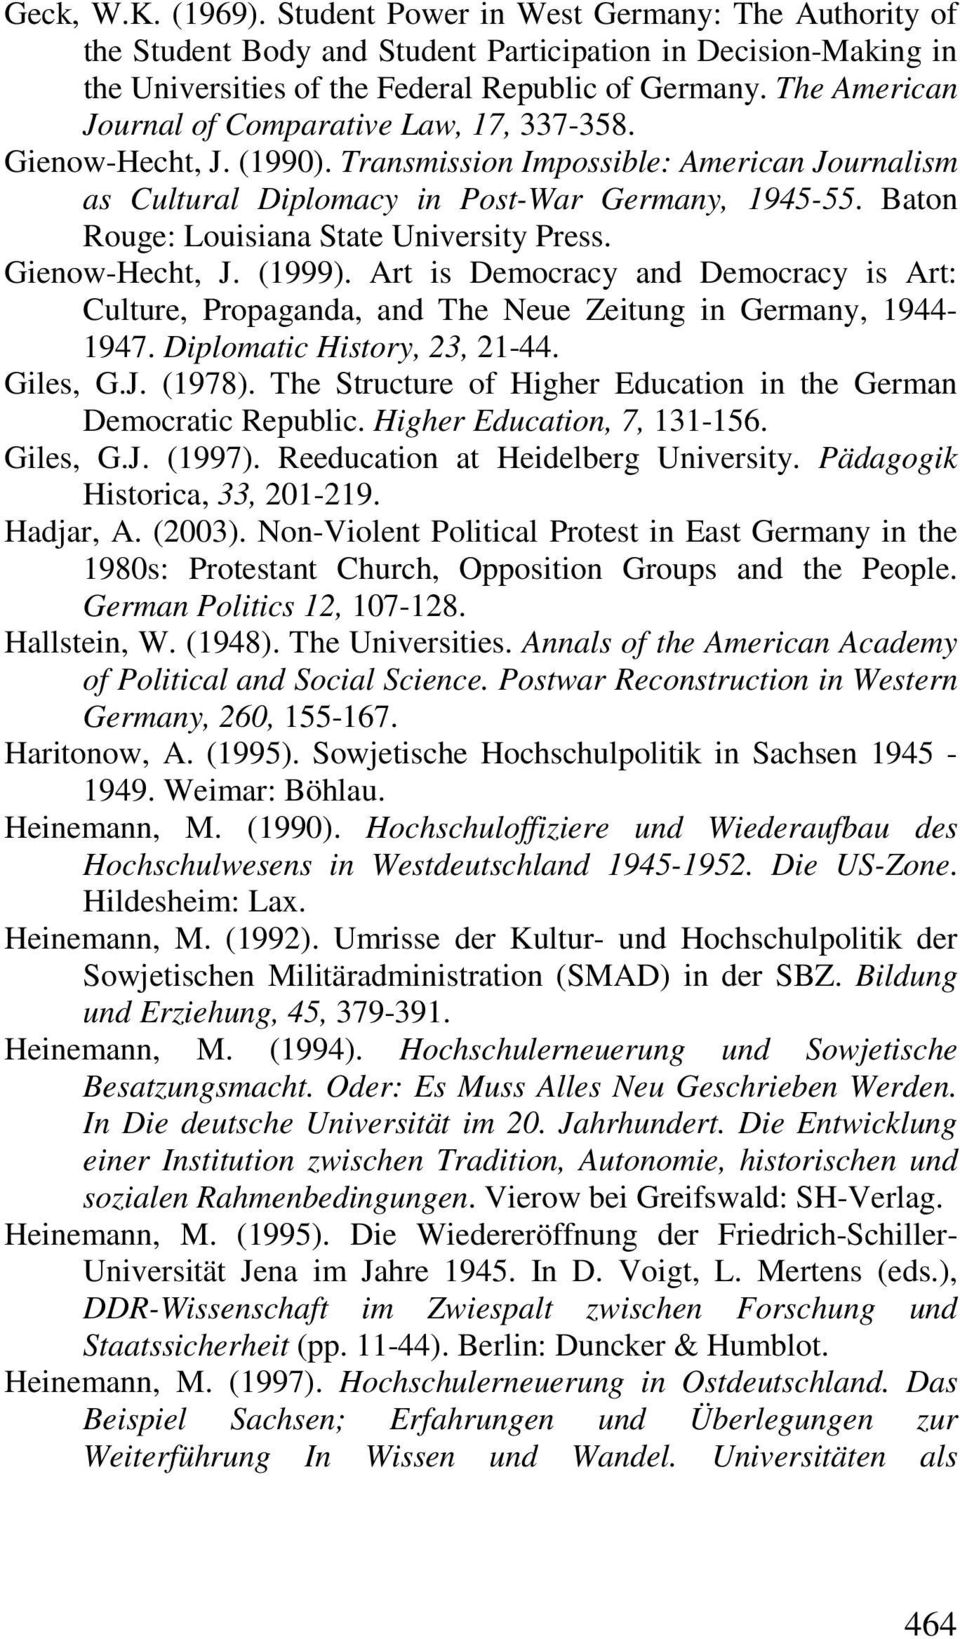 Baton Rouge: Louisiana State University Press. Gienow-Hecht, J. (1999). Art is Democracy and Democracy is Art: Culture, Propaganda, and The Neue Zeitung in Germany, 1944-1947.